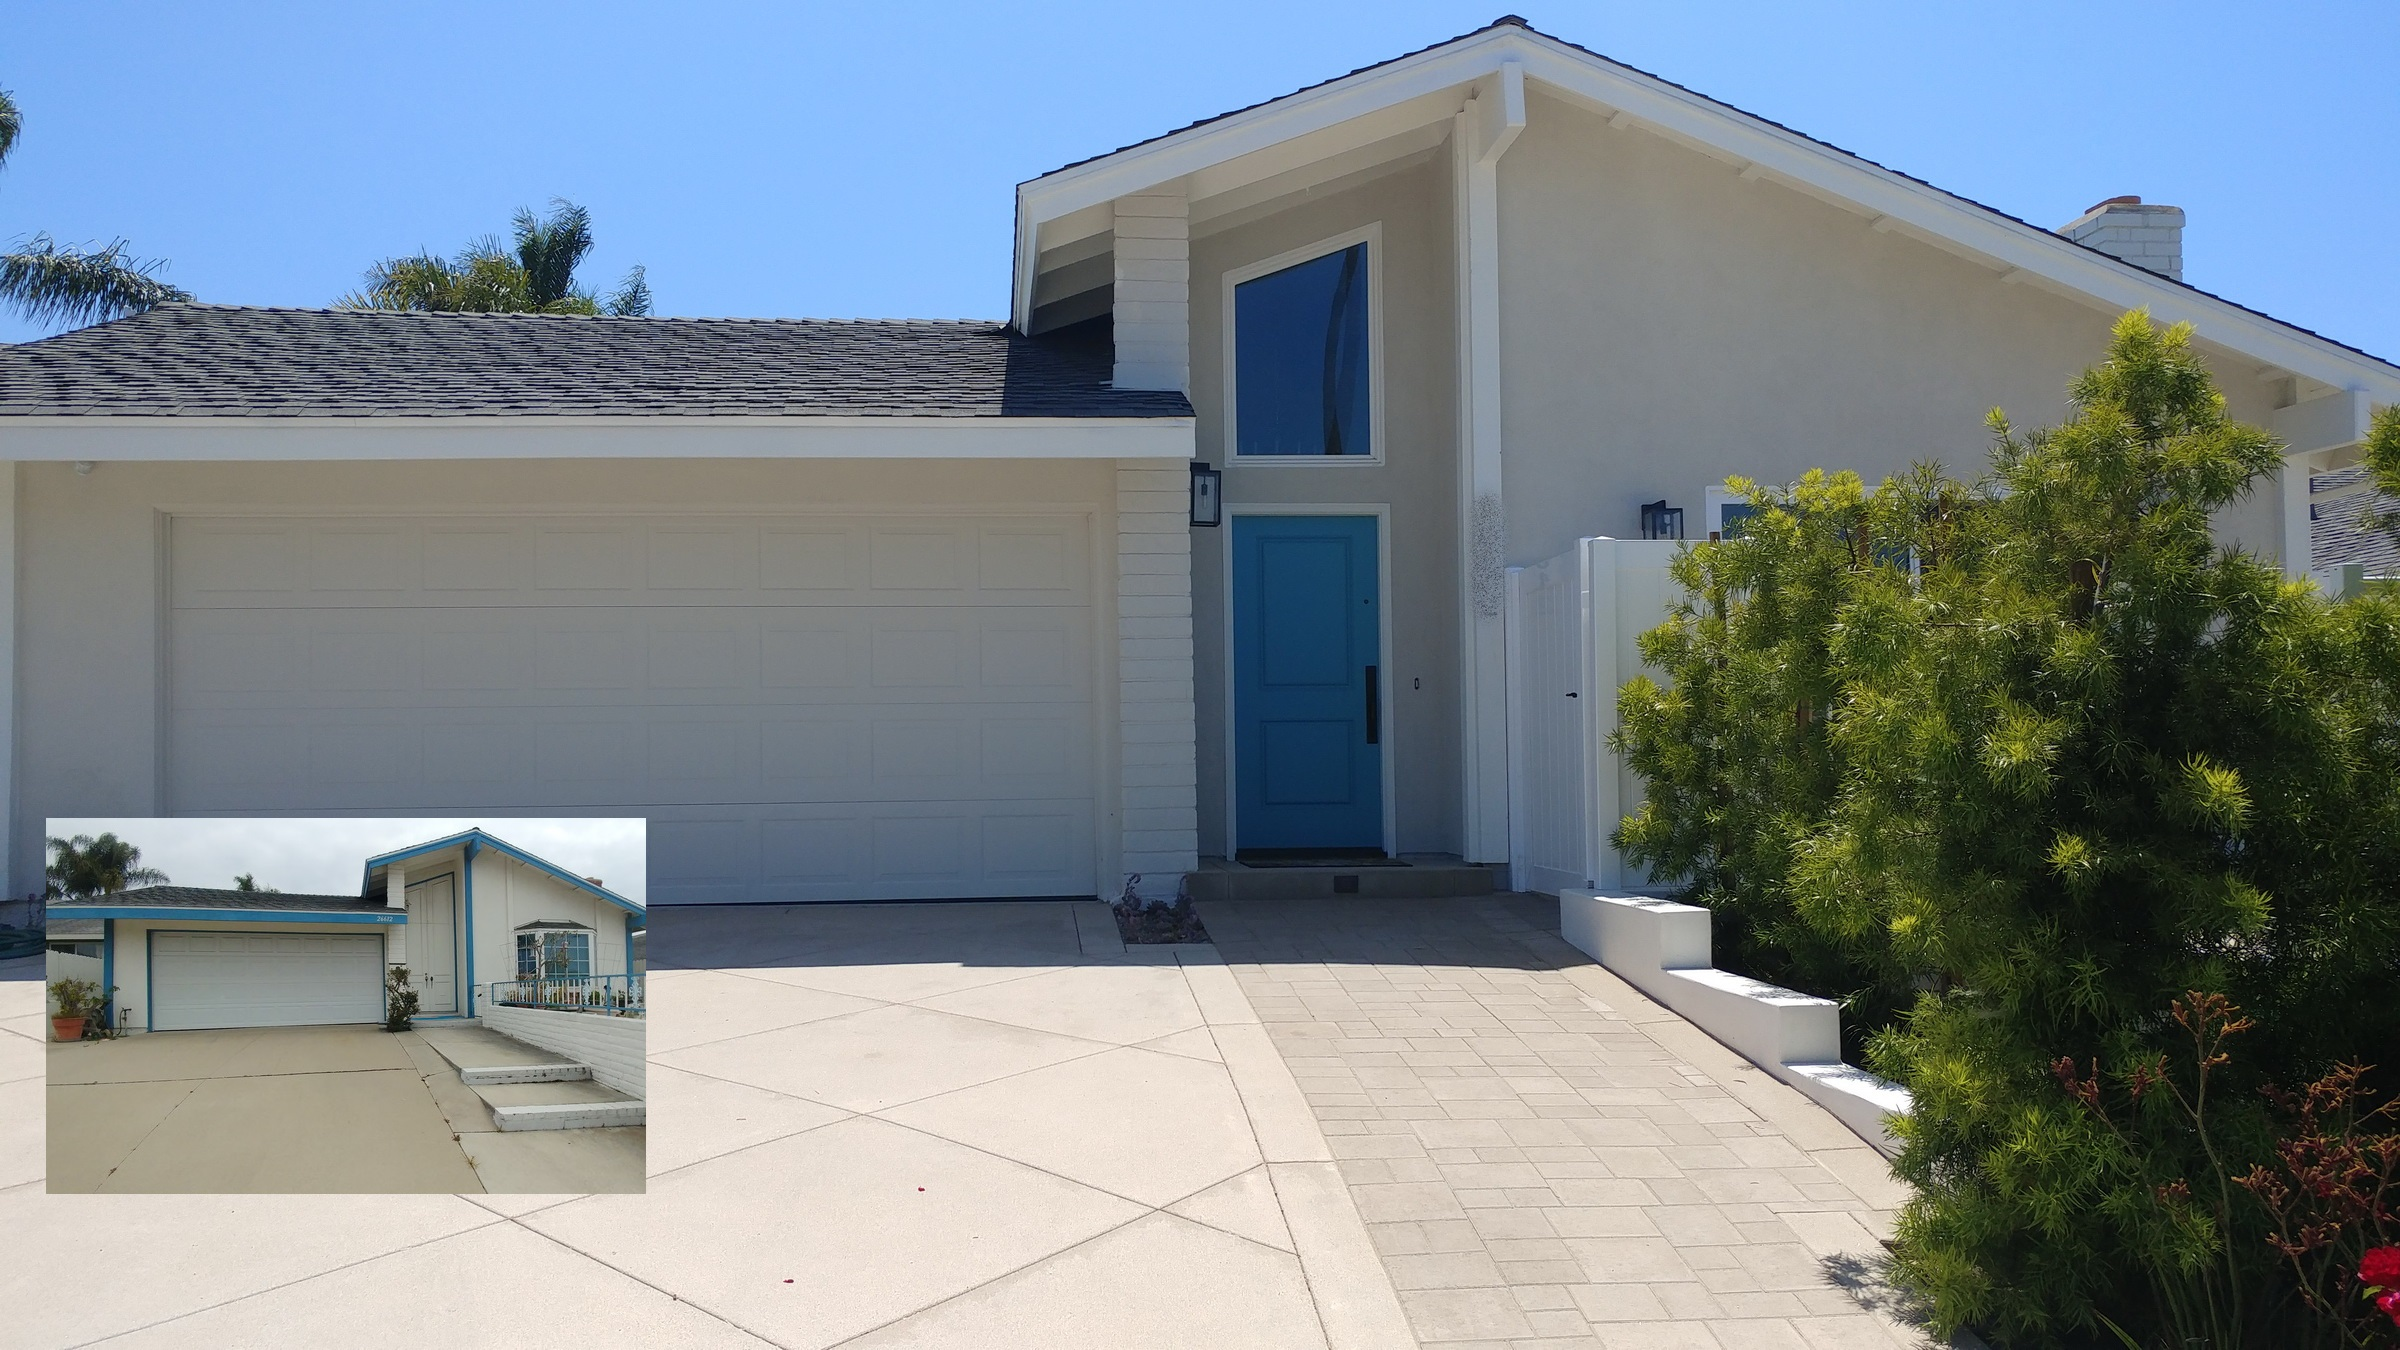 Whole-house remodel included a refreshed entry, entry window, driveway, and front patio.